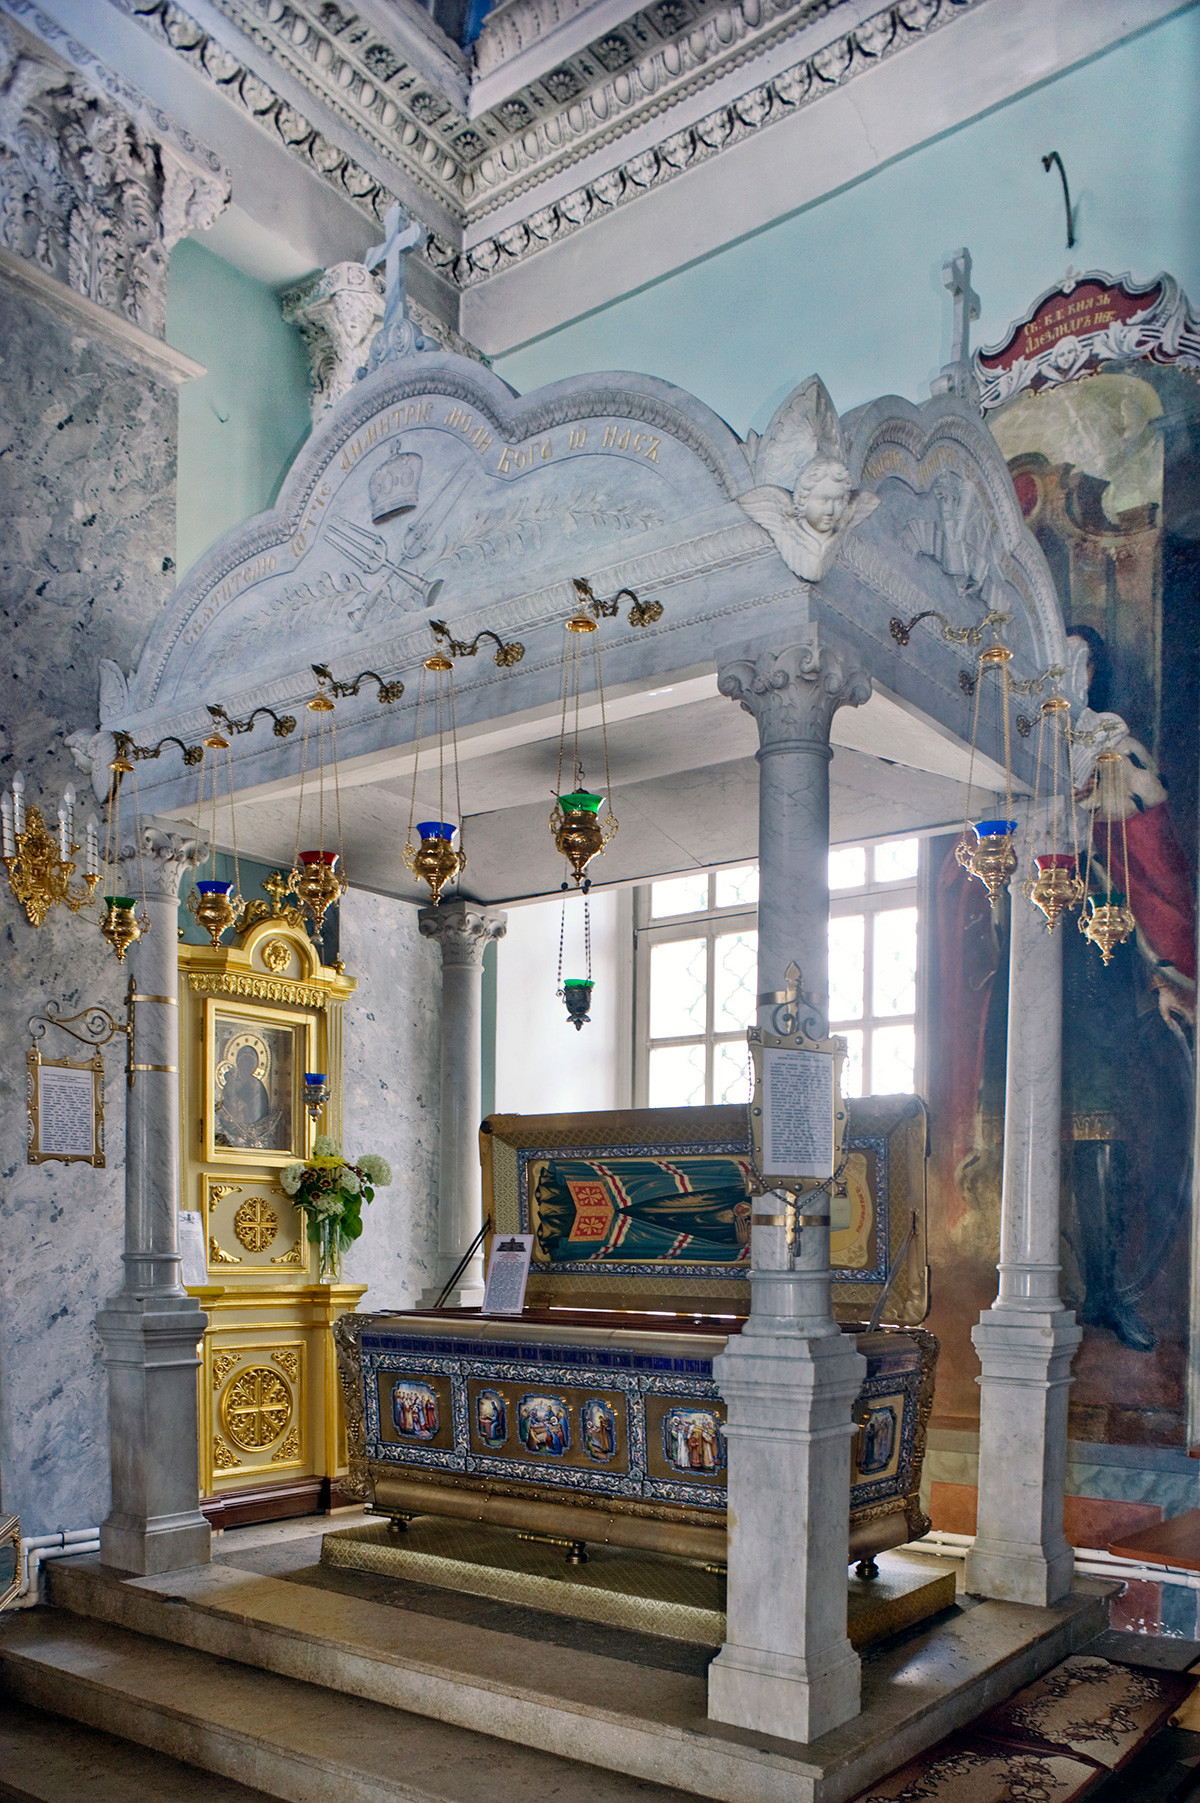 St. Dimitry Cathedral interior. Baldachin with silver sarcophagus  (third) containing relics of St. Dimitry of Rostov. July 7, 2019